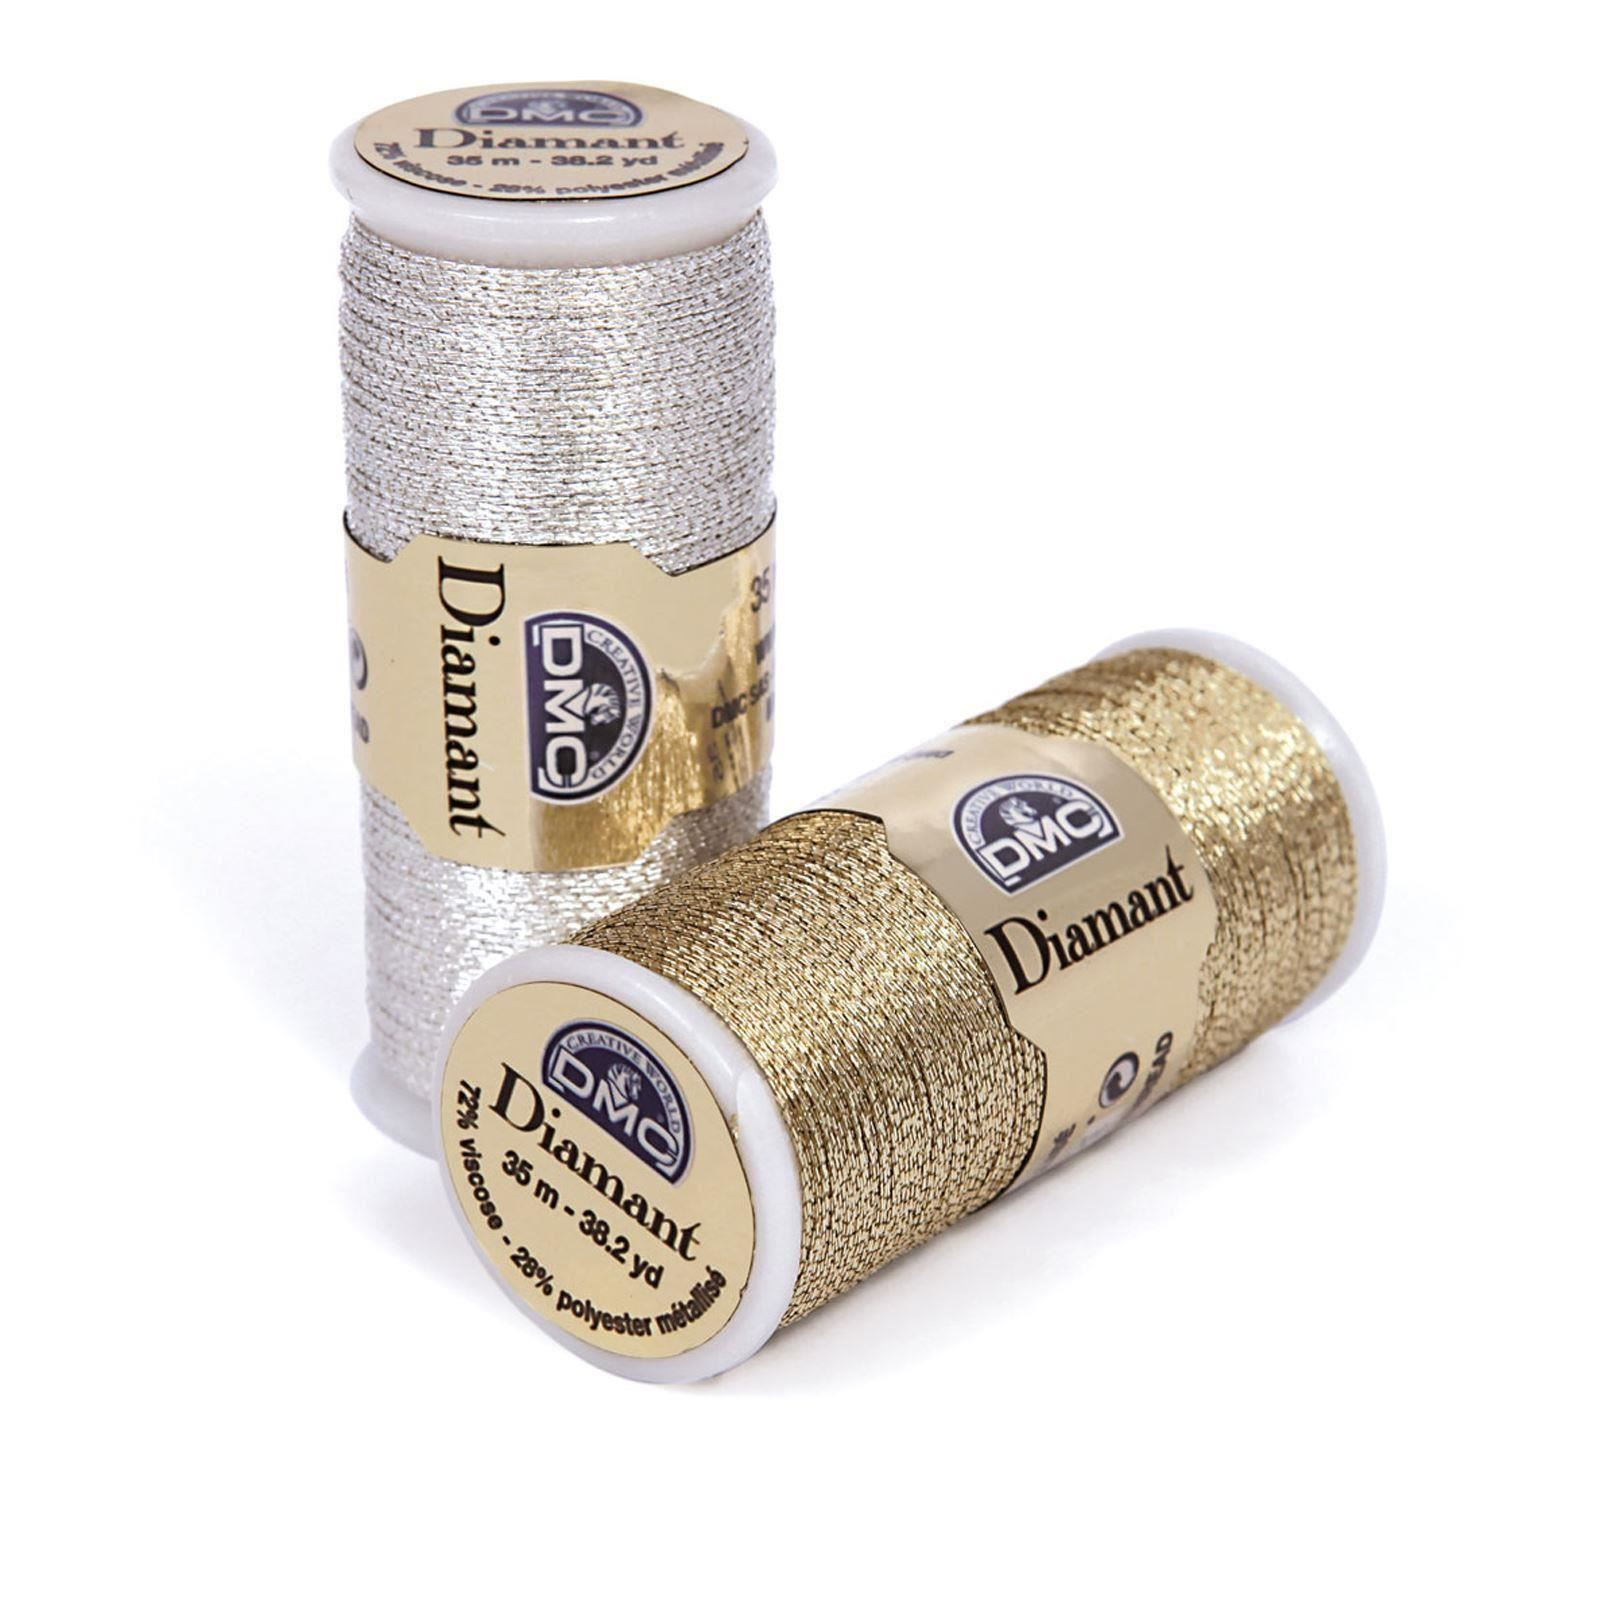 DMC-Diamant-Metallic-Embroidery-Thread-35m-Spool-Cross-Stitch thumbnail 53